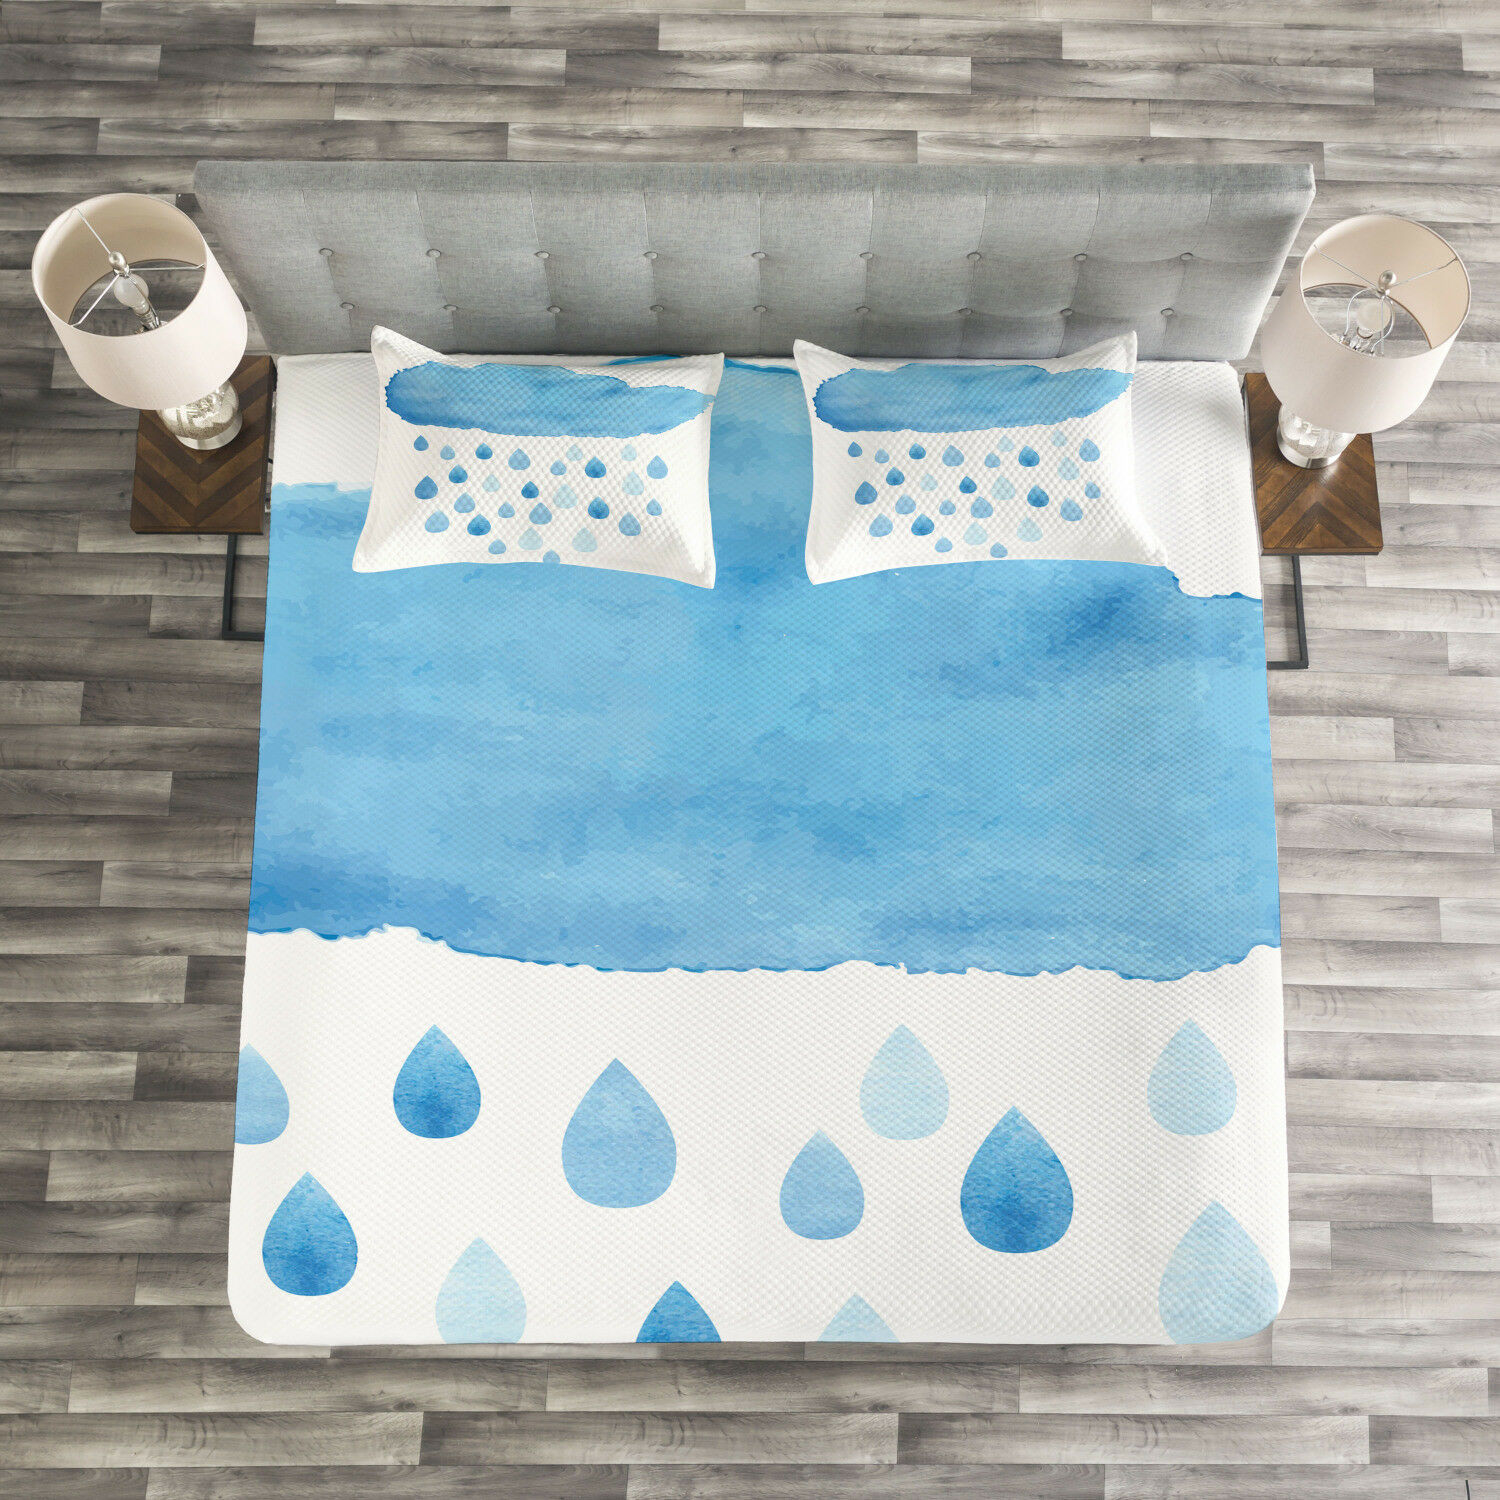 blu bianca Quilted Bedspread & Pillow Shams Set, Rain Drops and Cloud Print